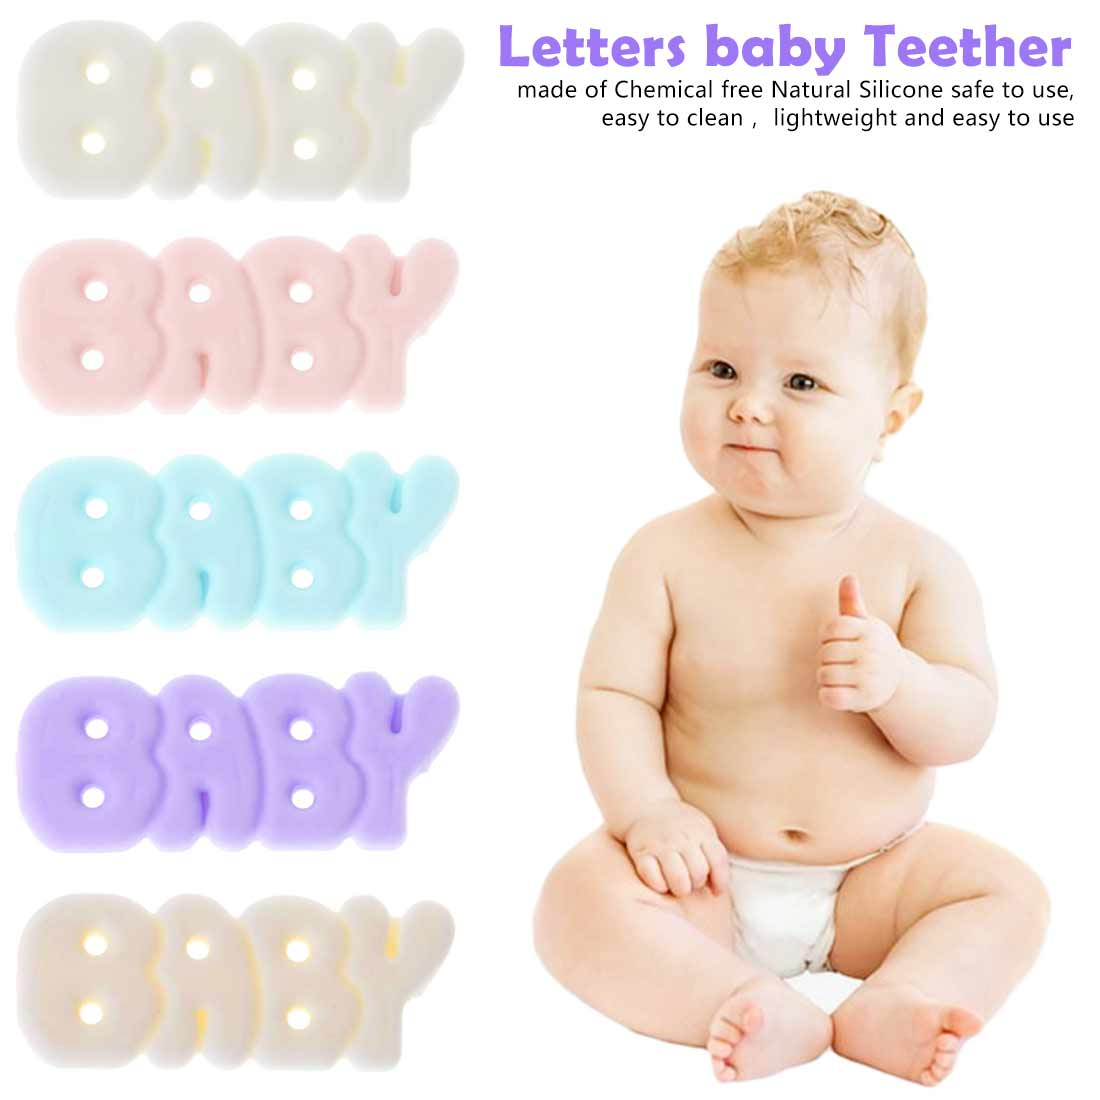 1PCS Free Silicone Letter BABY Teether Sensory Chewing Pacifier DIY Baby Necklace Pendant Teething Chewing Toys